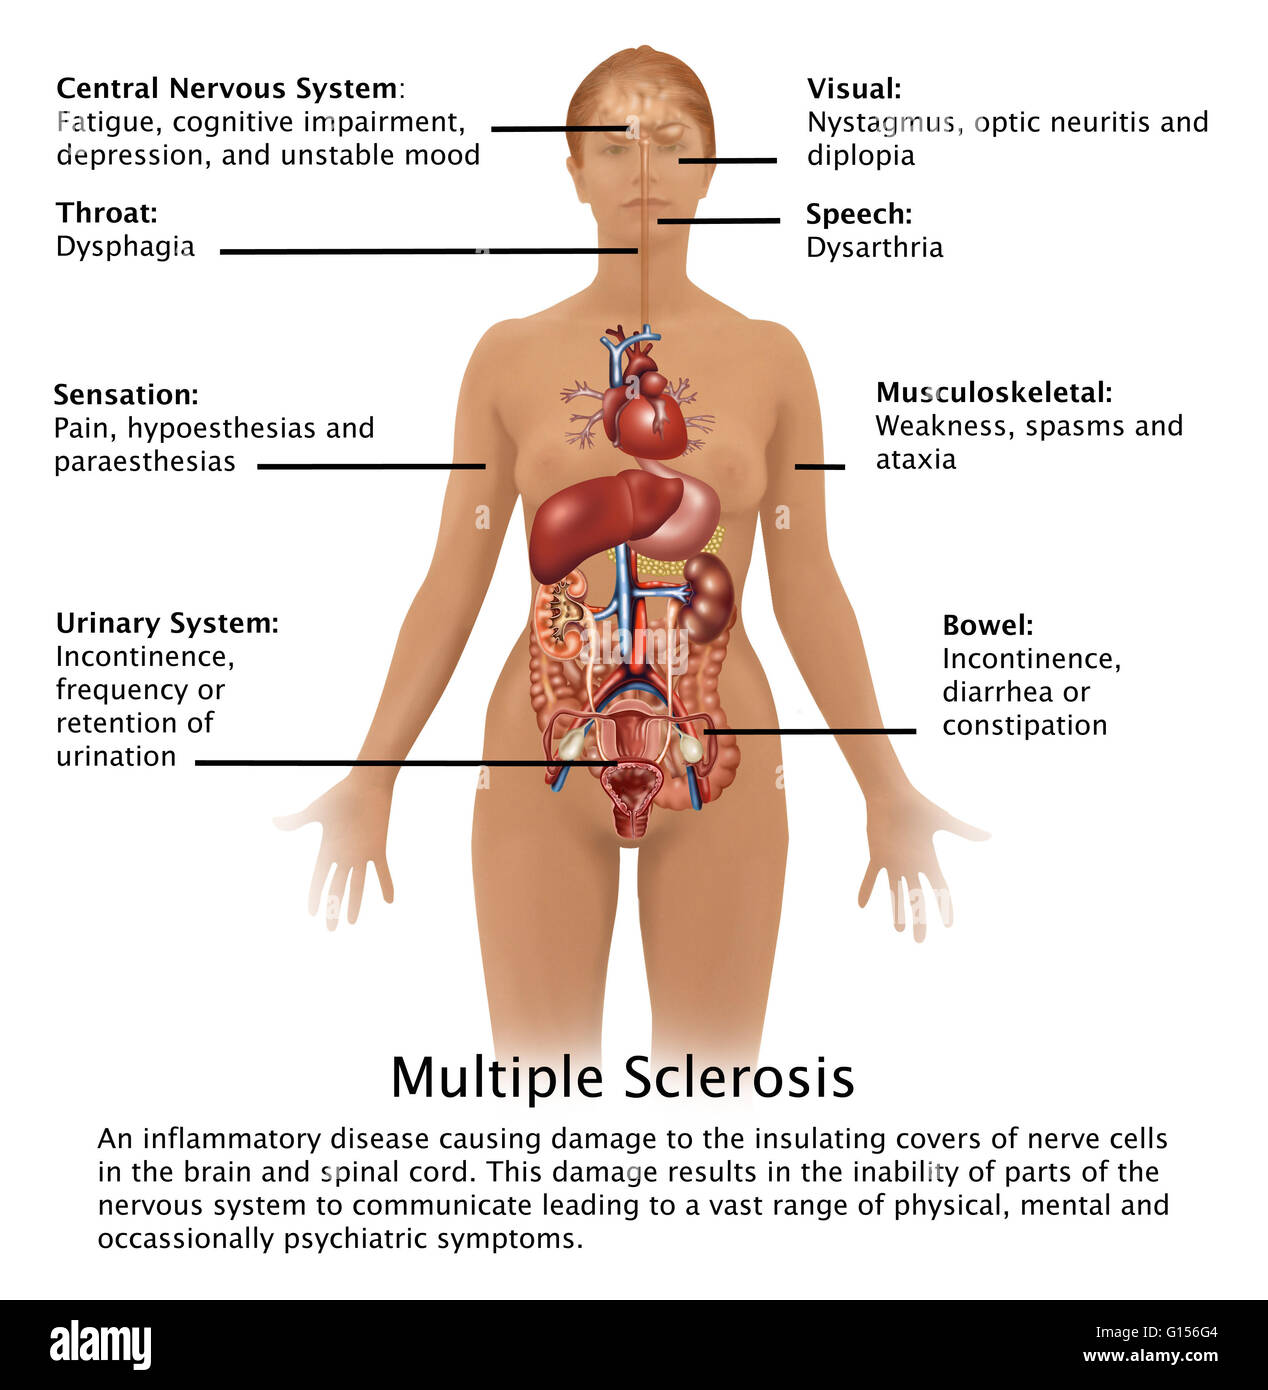 Diagram Showing The Symptoms Of Multiple Sclerosis And Their Cell Location In Human Body Is An Inflammatory Disease Causing Damage To